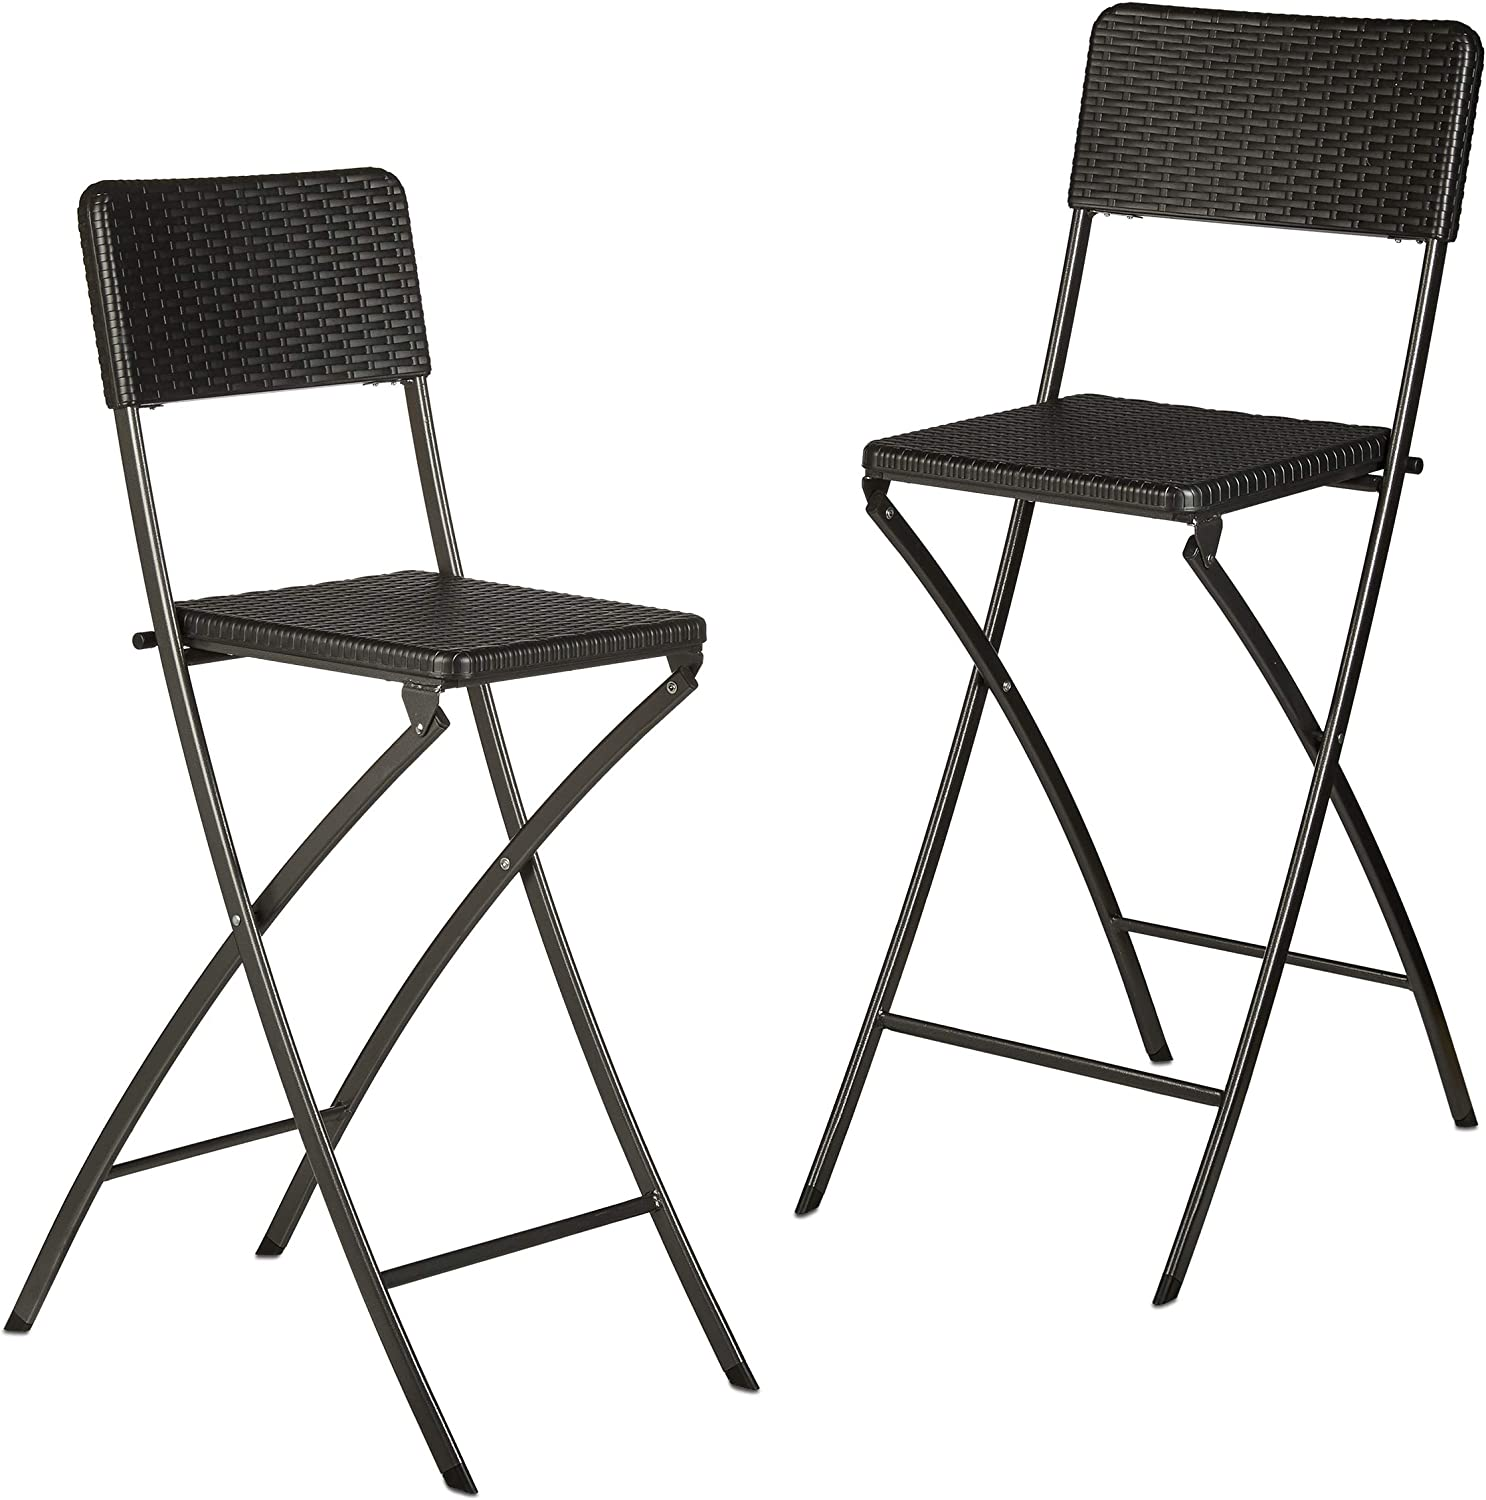 Counter-Height 78 cm Tall Bistro Chairs Foldable Relaxdays BASTIAN Folding Bar Stools Black Backrest Rattan Look